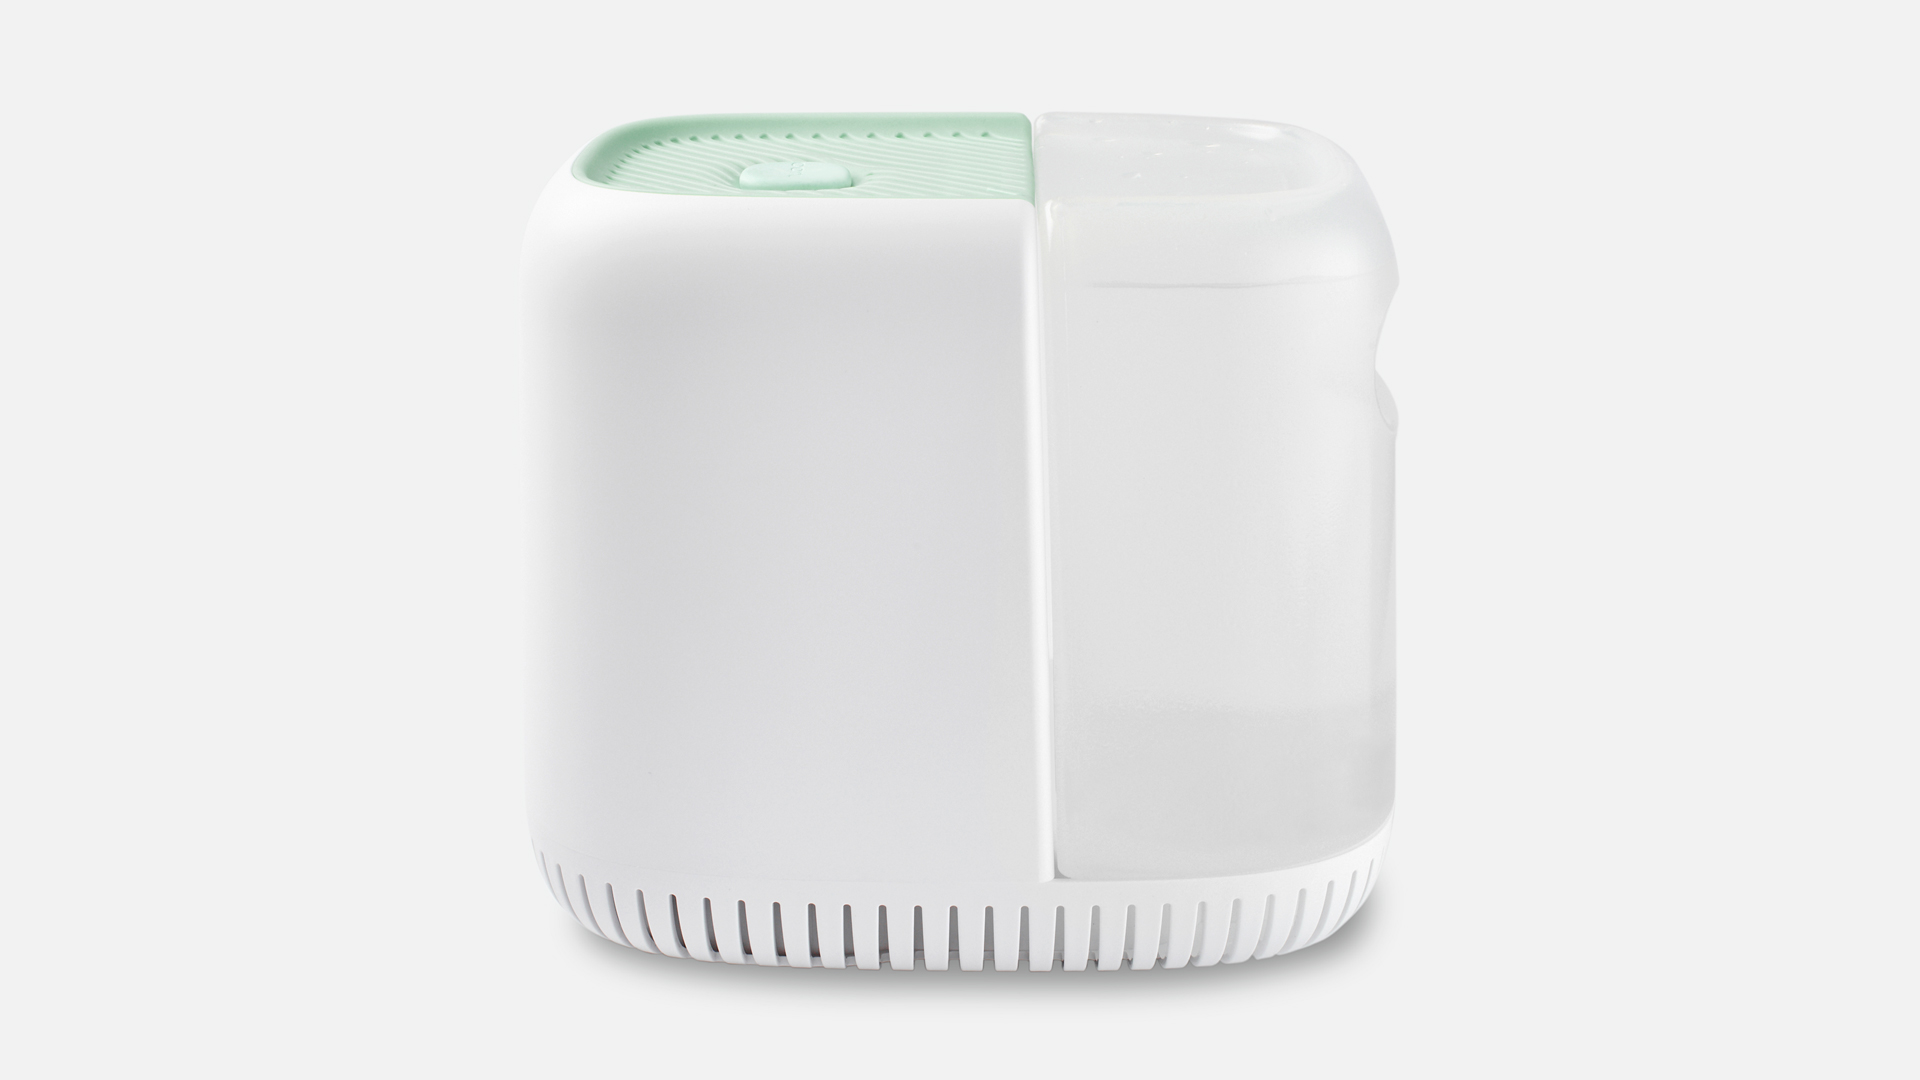 Canopy x The Sill Humidifier Set